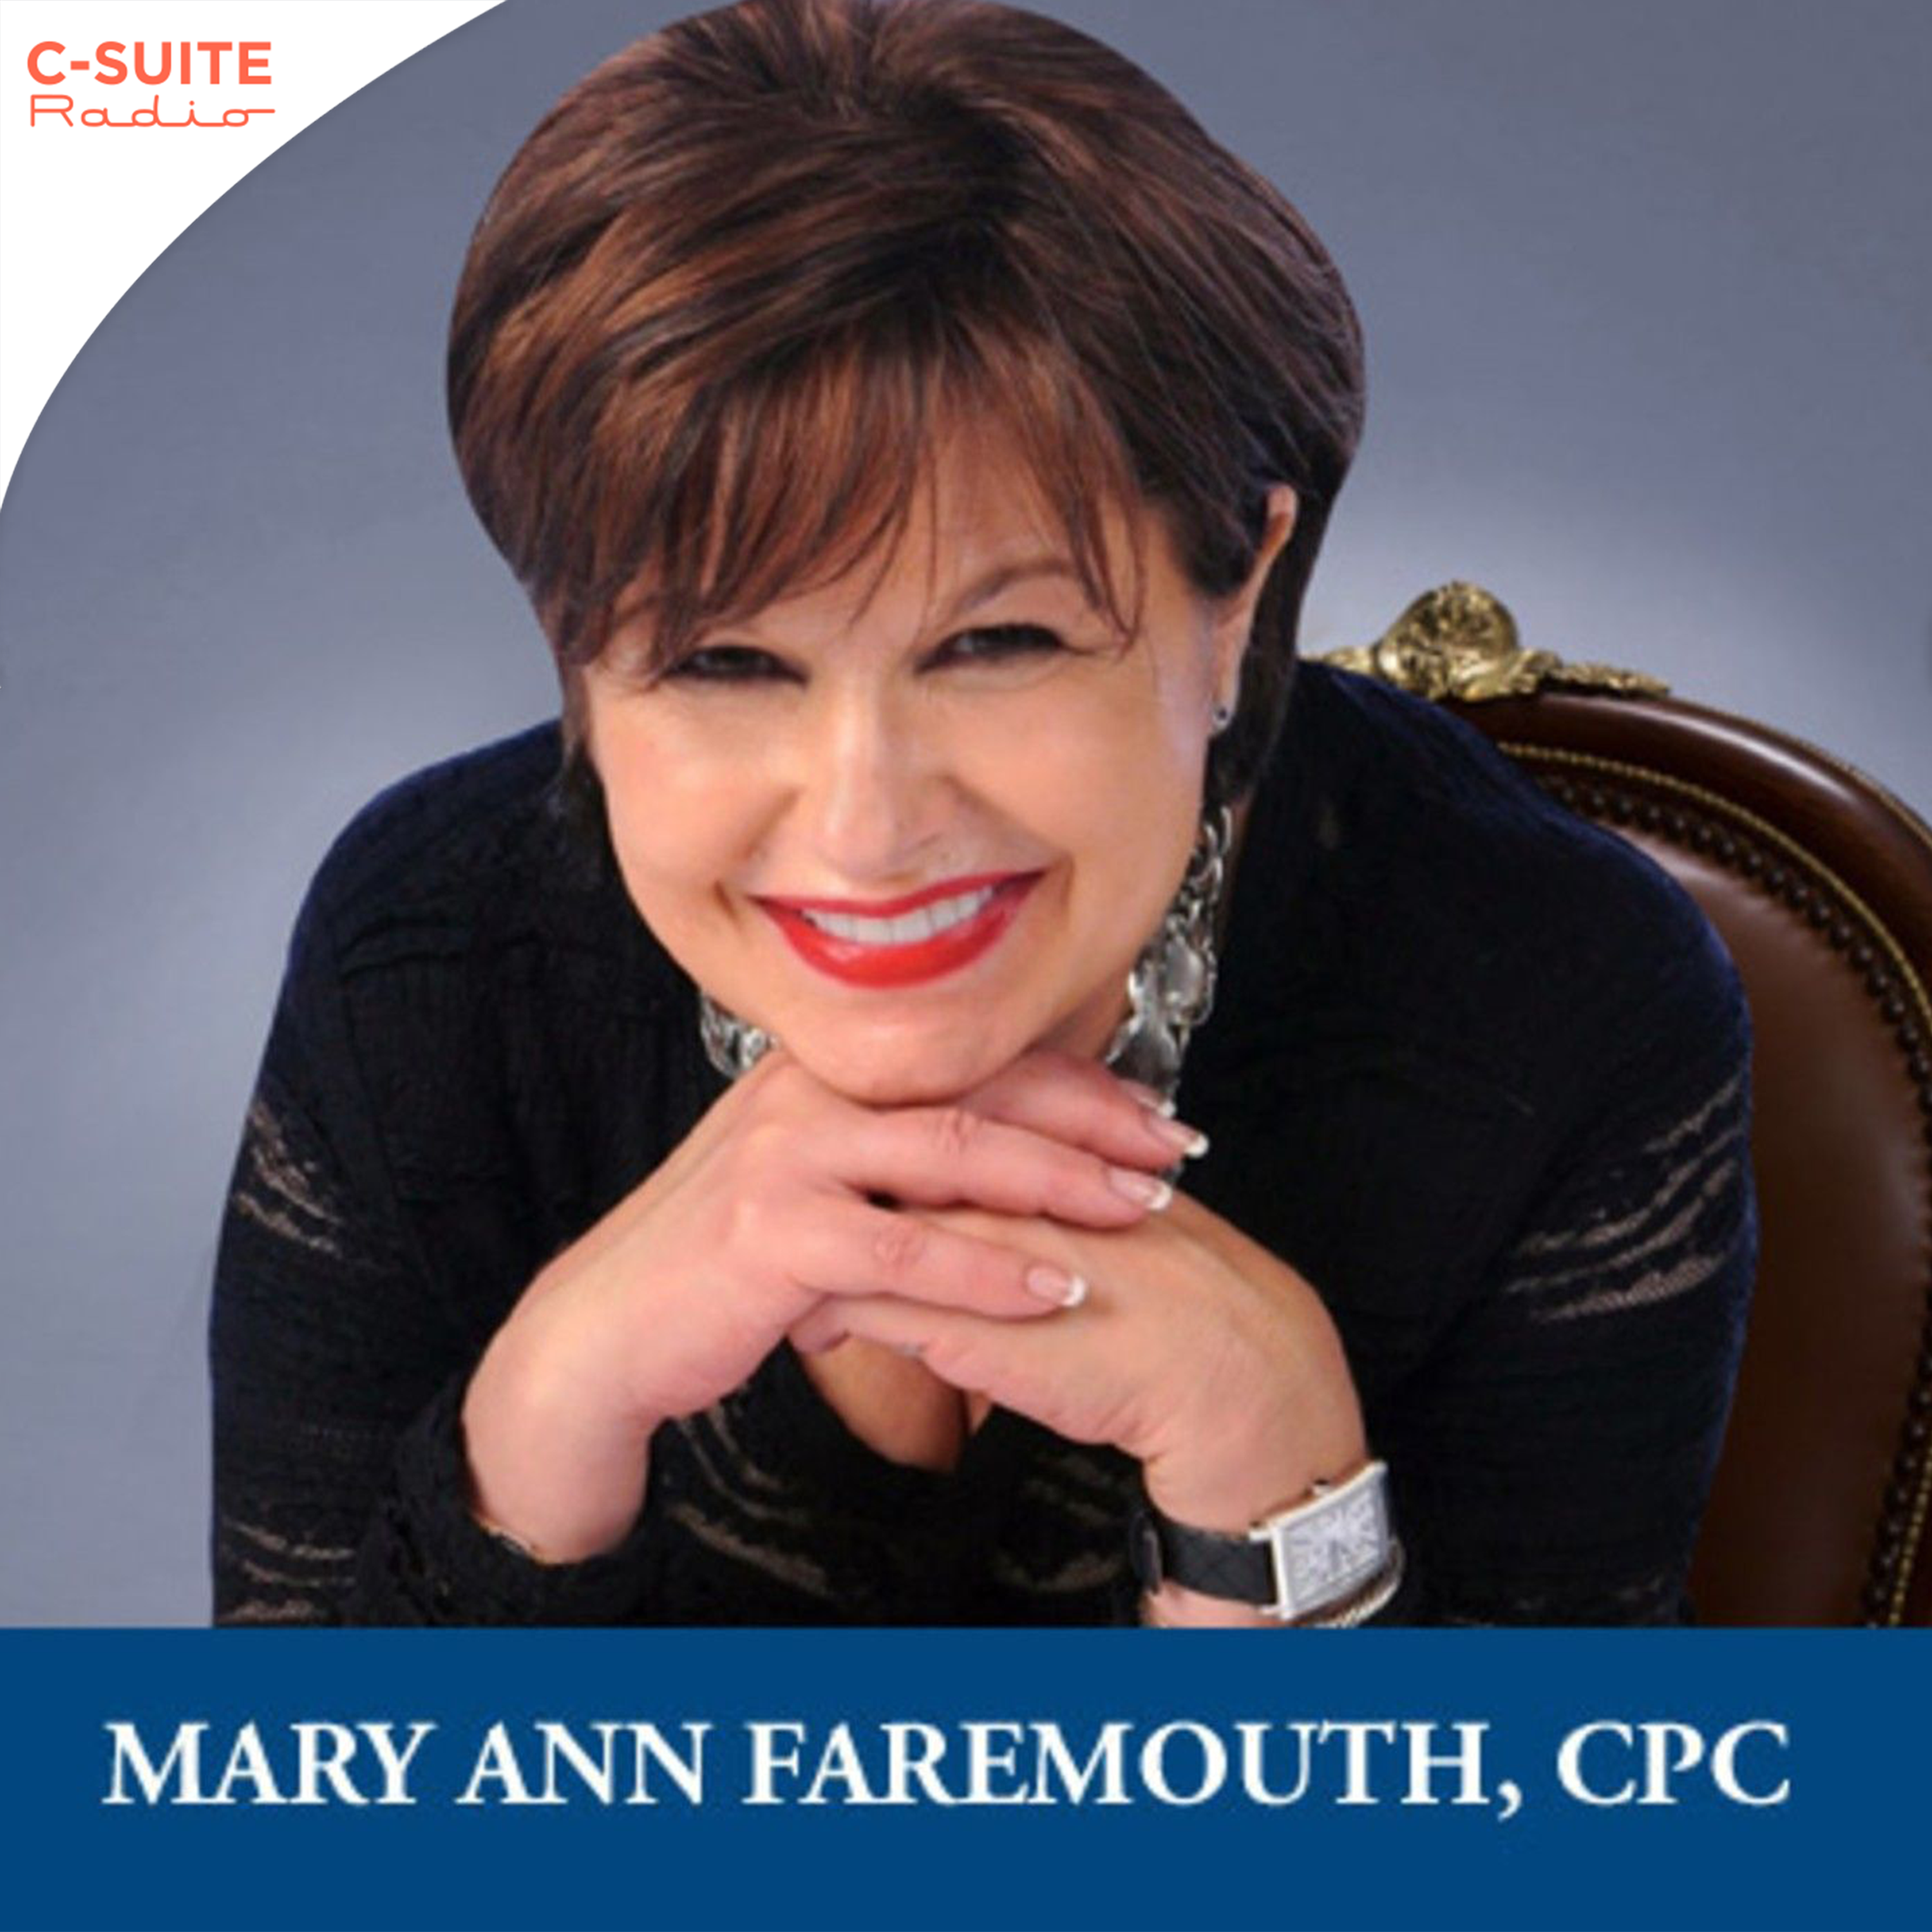 Mary Ann's Podcasts about the New Work World